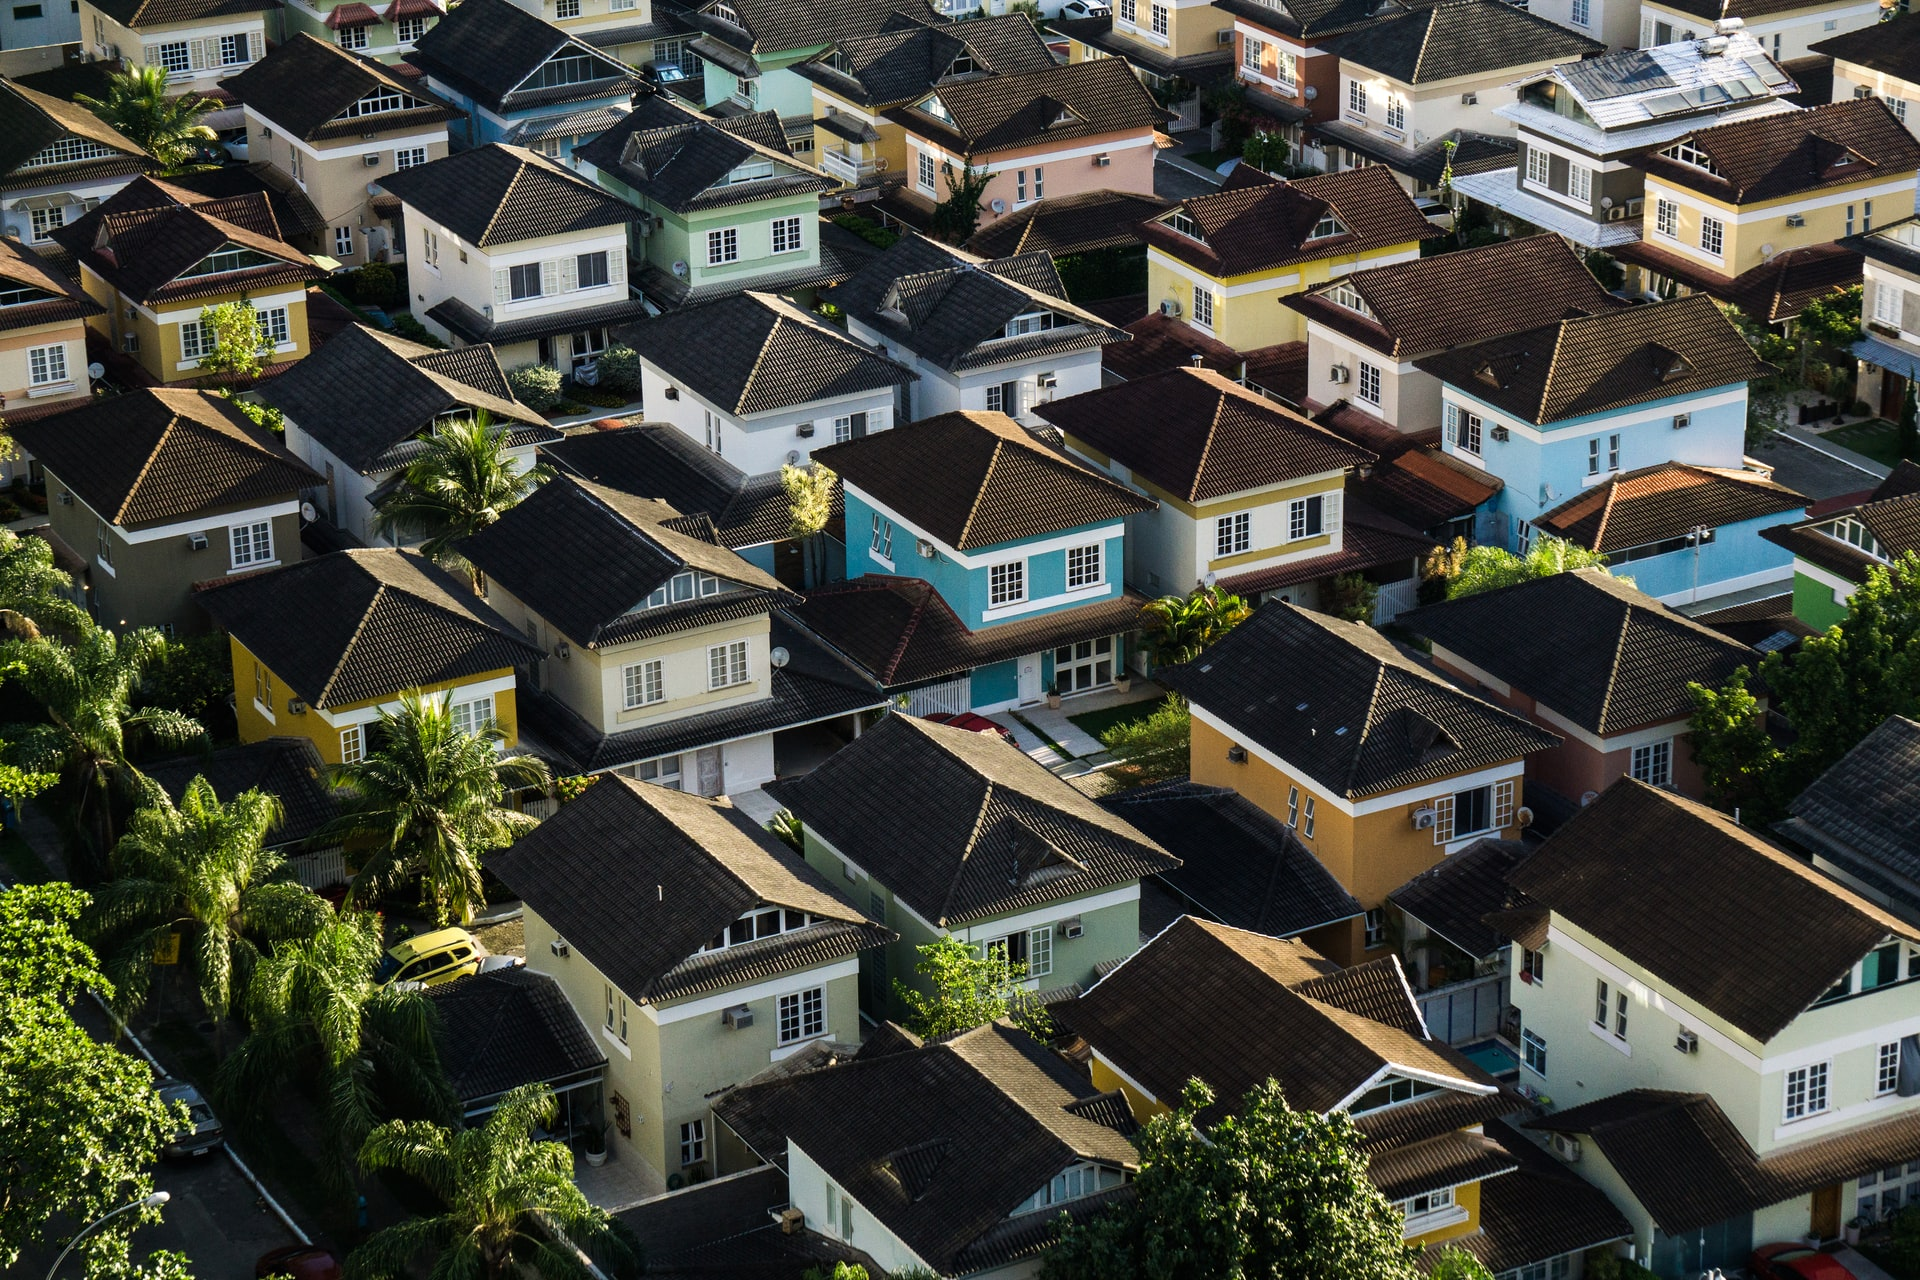 Selling real estate can be difficult, especially during a global pandemic when the future of the market is uncertain. Even for sellers who find willing buyers, there is no guarantee those buyers can obtain financing to complete the purchase.